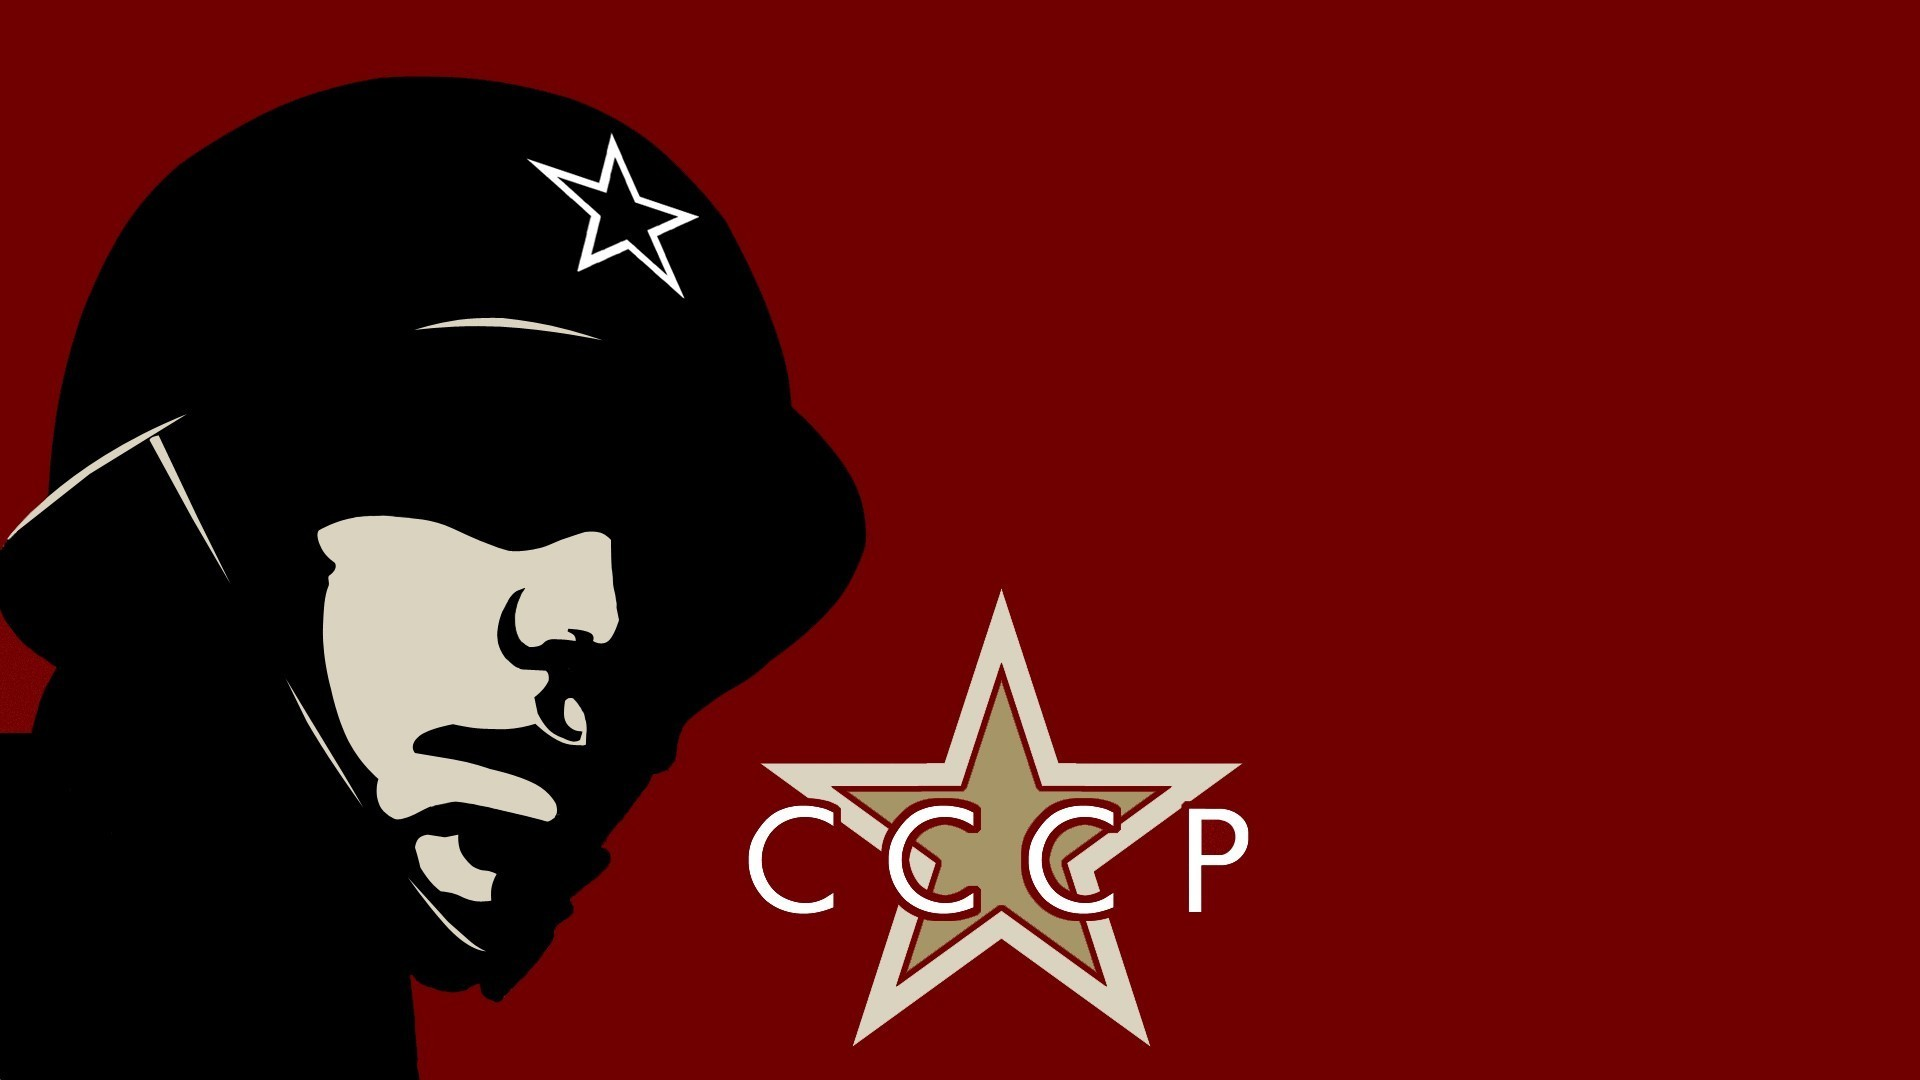 1920x1080 Soviet Union Soviet Army soldier Wallpaper